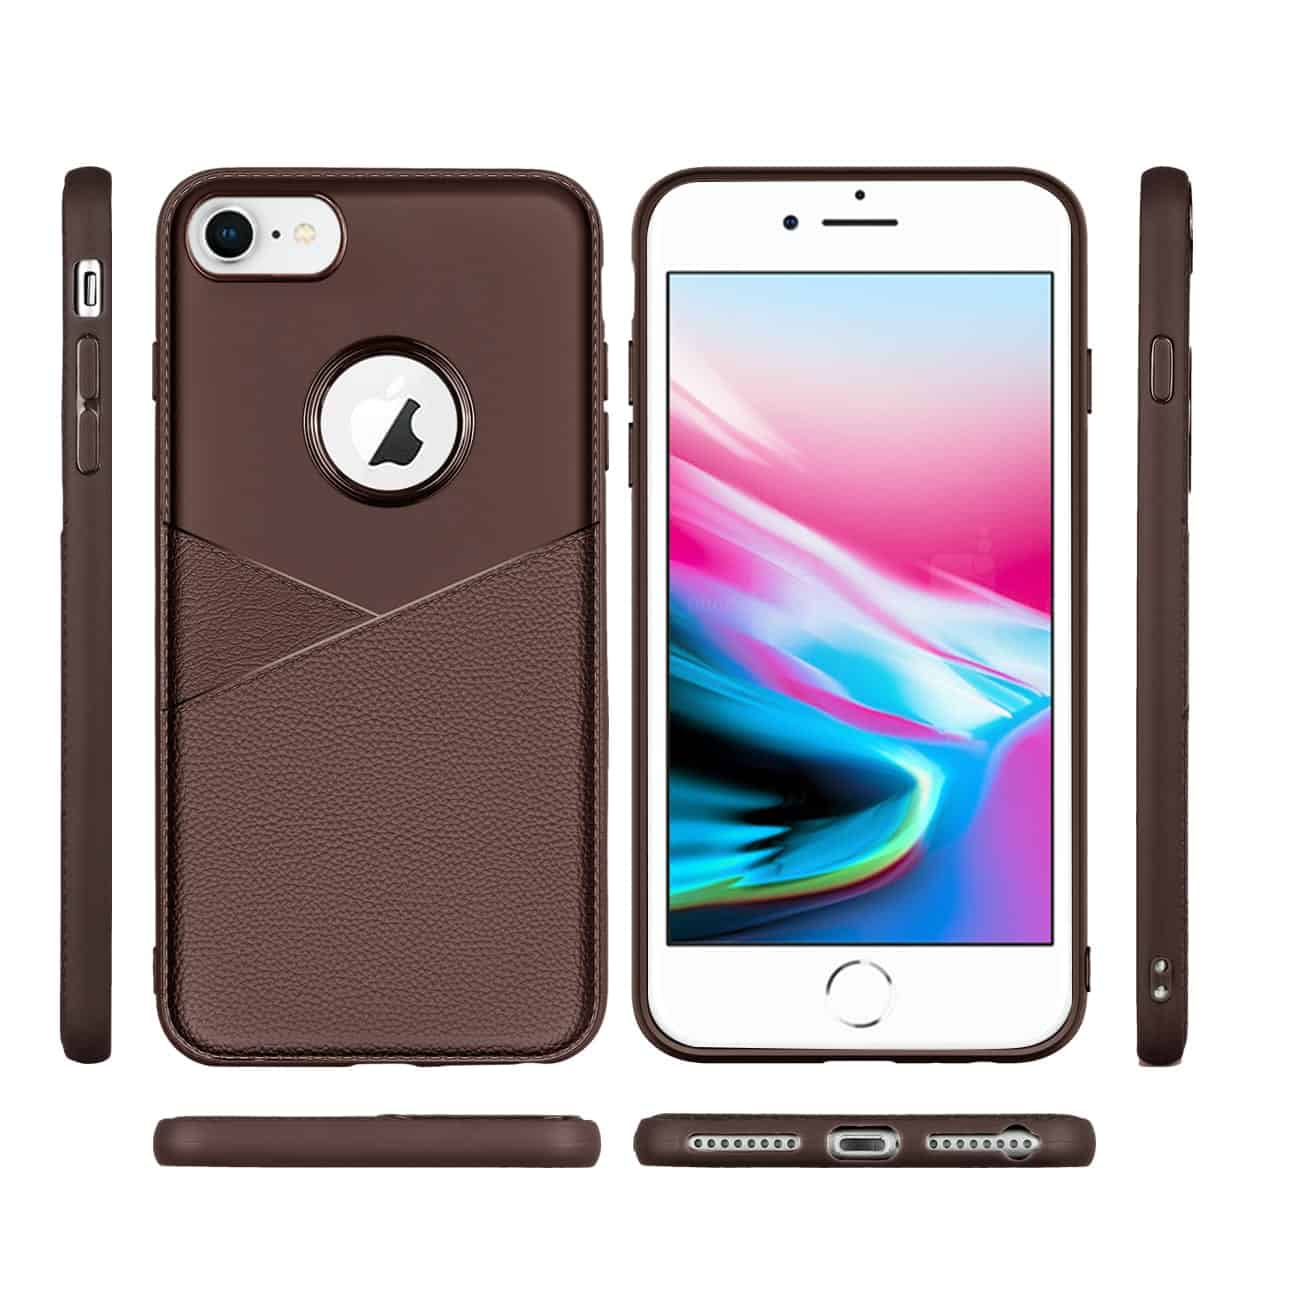 Apple iPhone 8 Good quality phone case in Brown